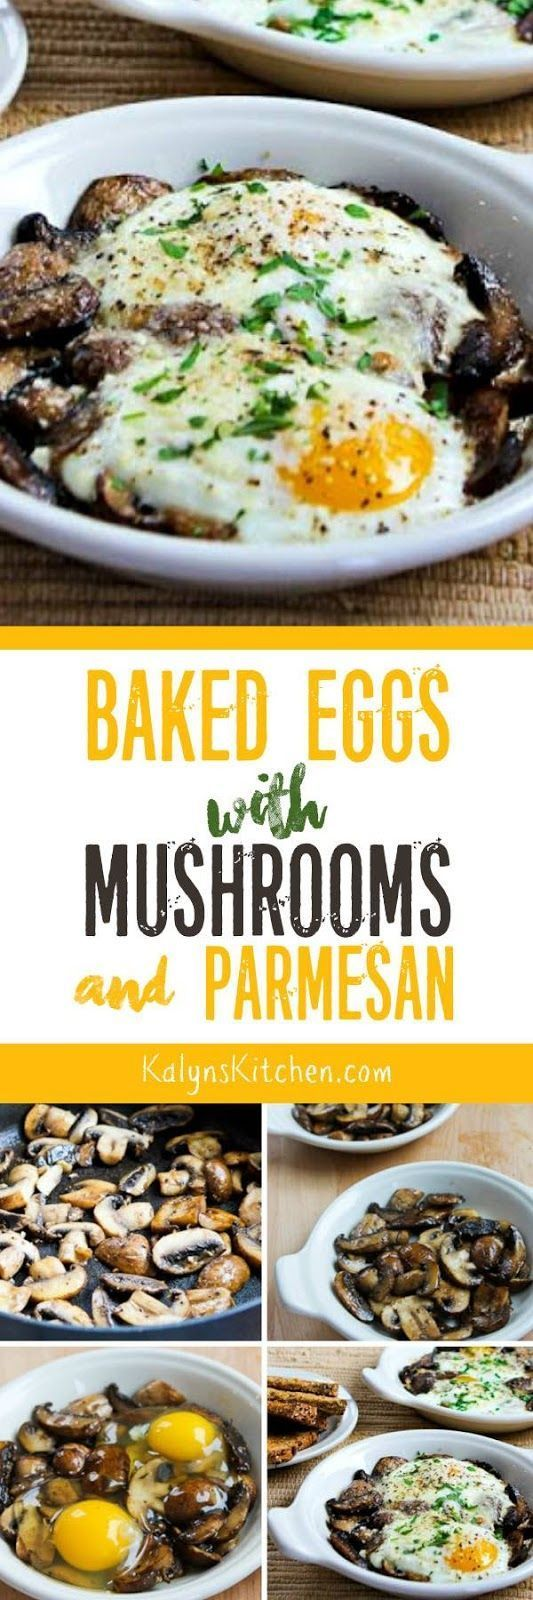 Baked Eggs with Mushrooms and Parmesan is delicious with some whole wheat toast, or if you skip the toast this can be low-carb, Keto, and gluten-free! Either way it's a delicious way to start the day. [found on http://KalynsKitchen.com]